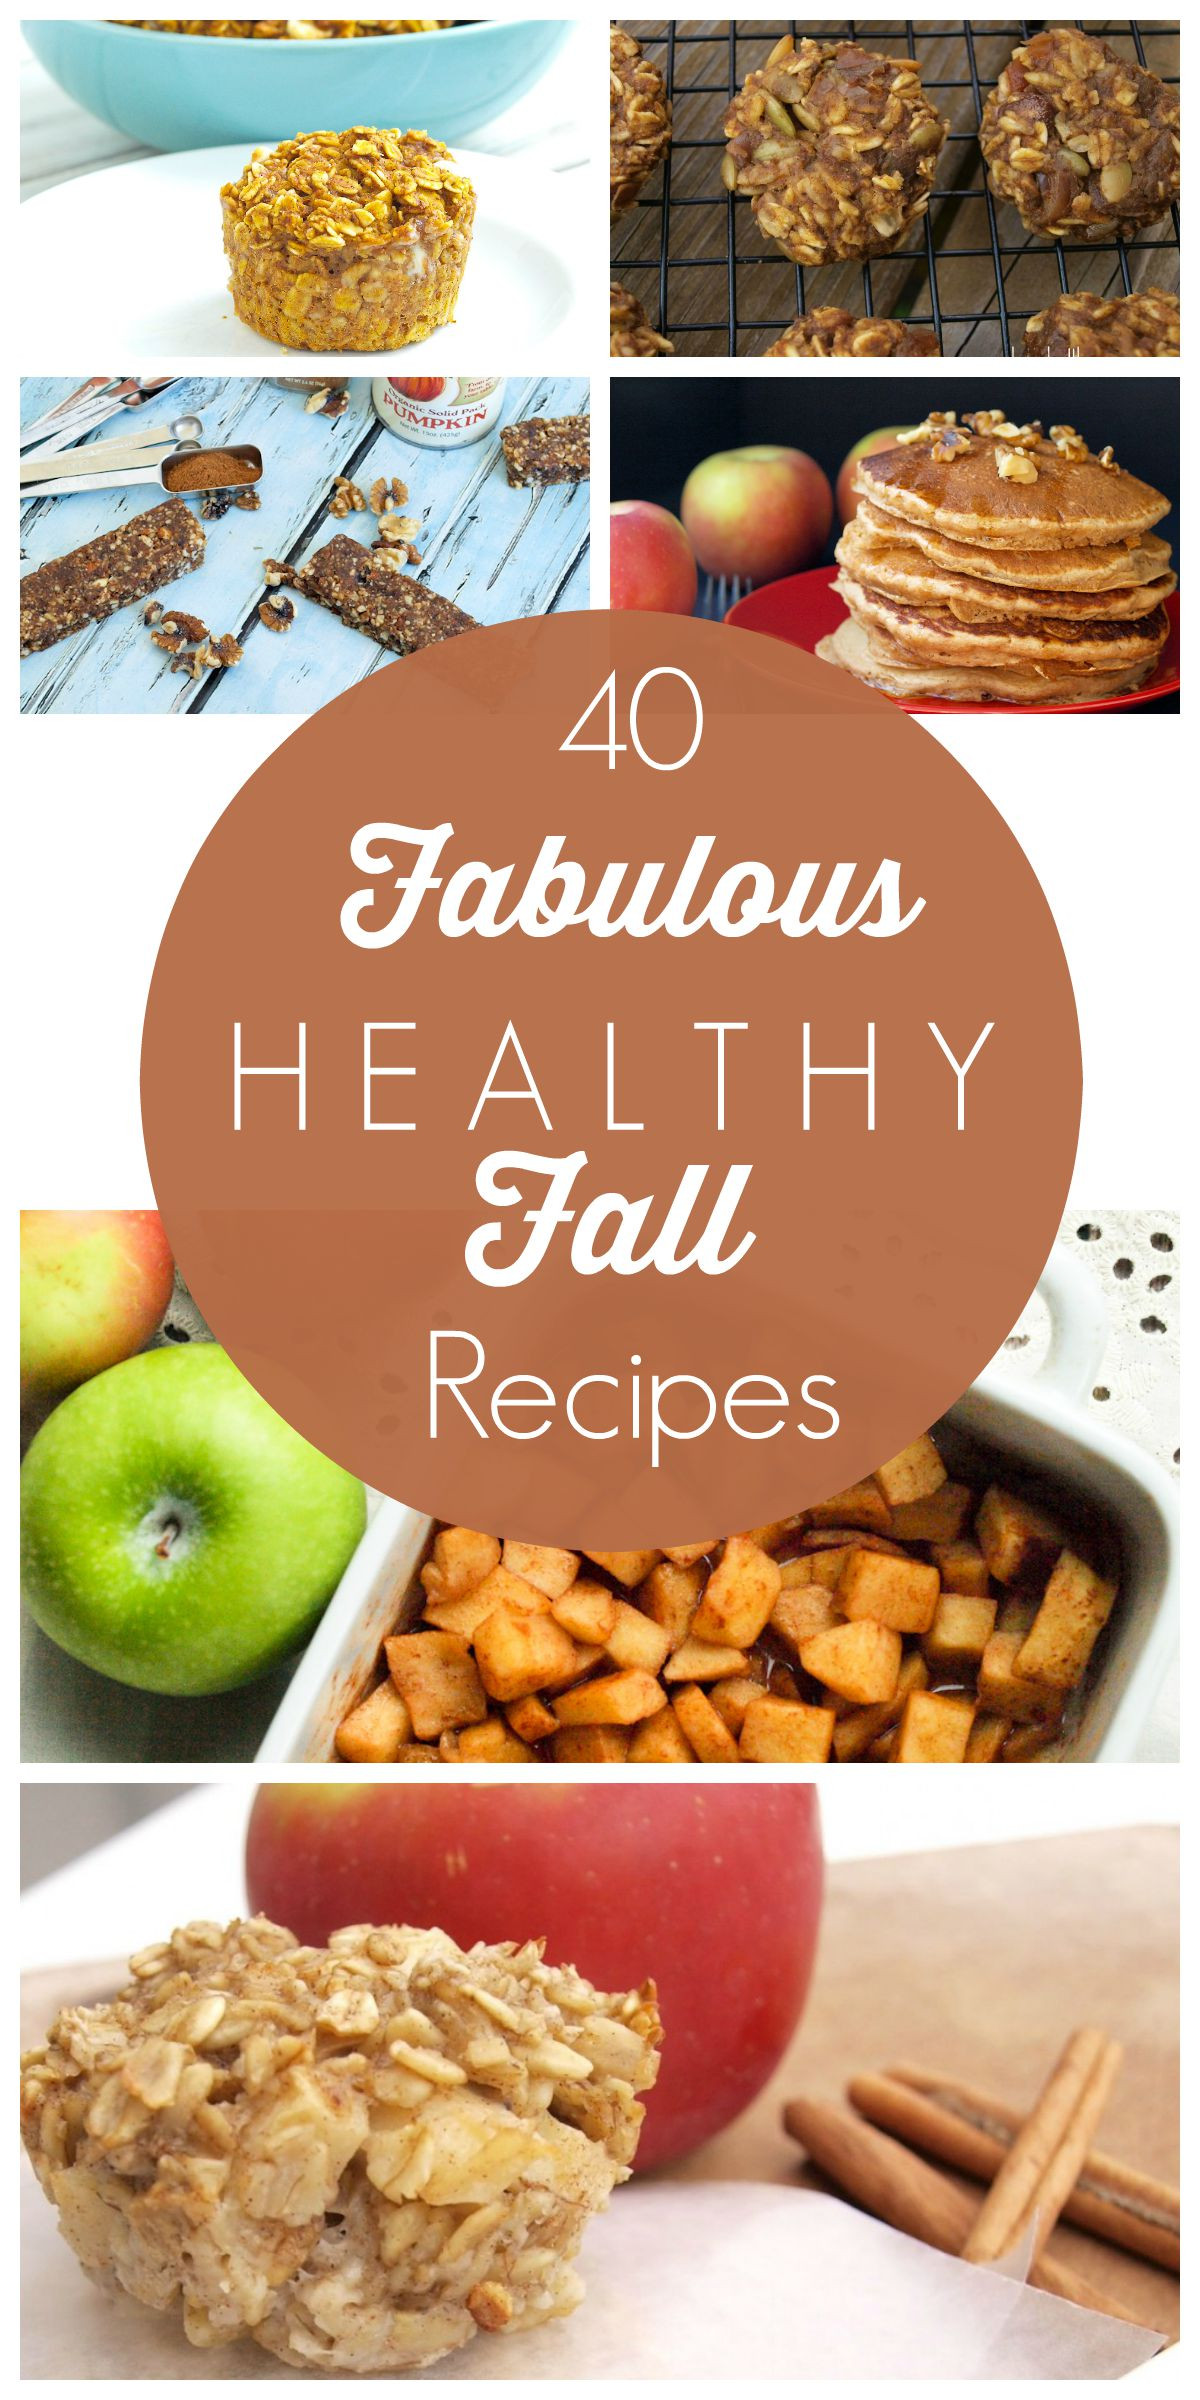 Healthy Fall Breakfast Recipes  40 Fabulous Healthy Fall Recipes Happy Healthy Mama